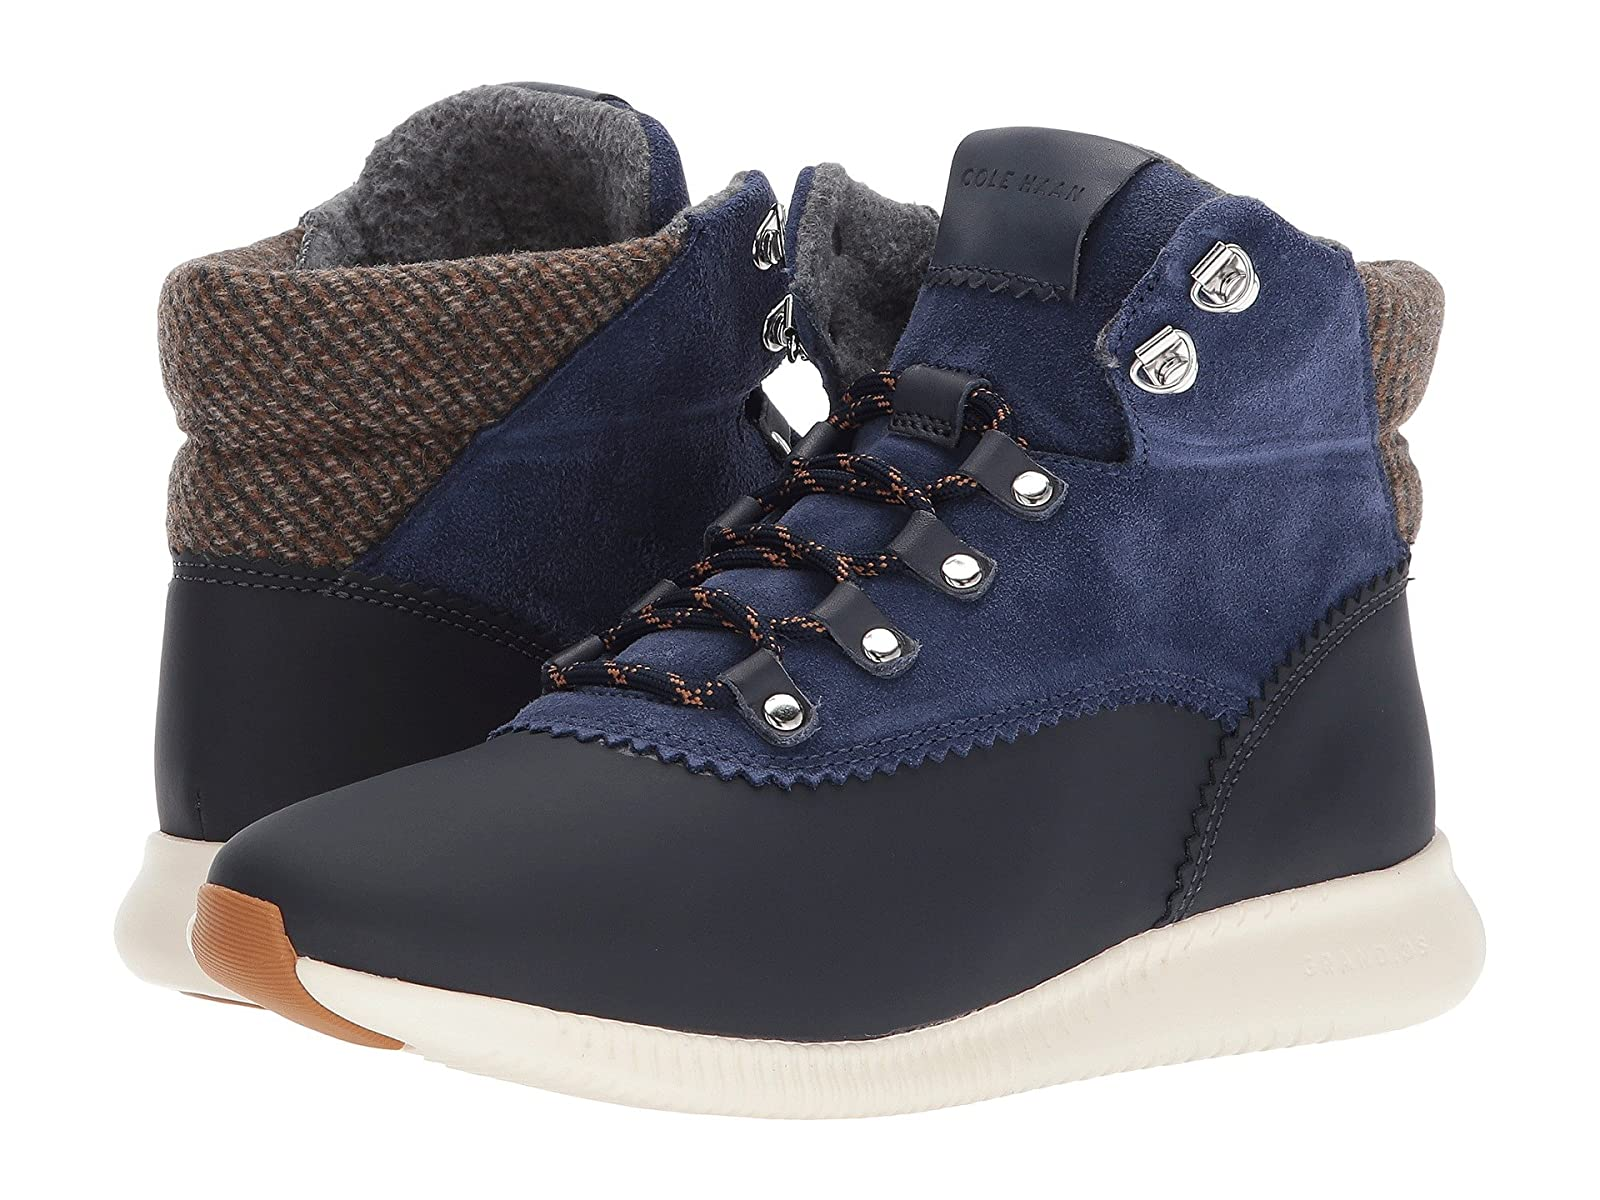 Cole Haan Studiogrand Hiker Update WaterproofCheap and distinctive eye-catching shoes